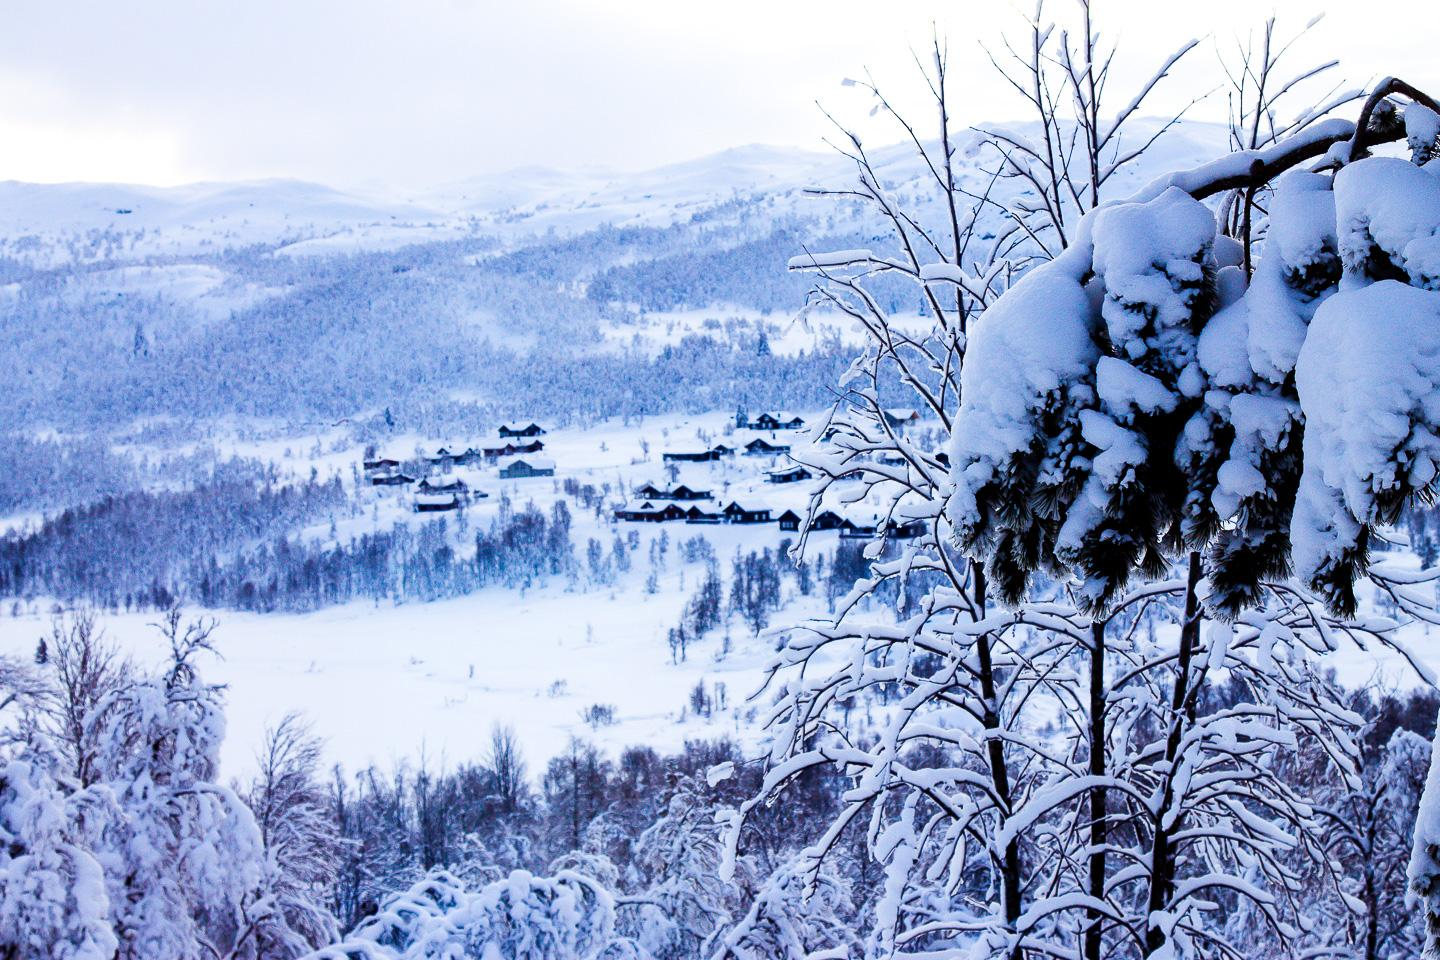 Norway. How to live in the snowy outback 76